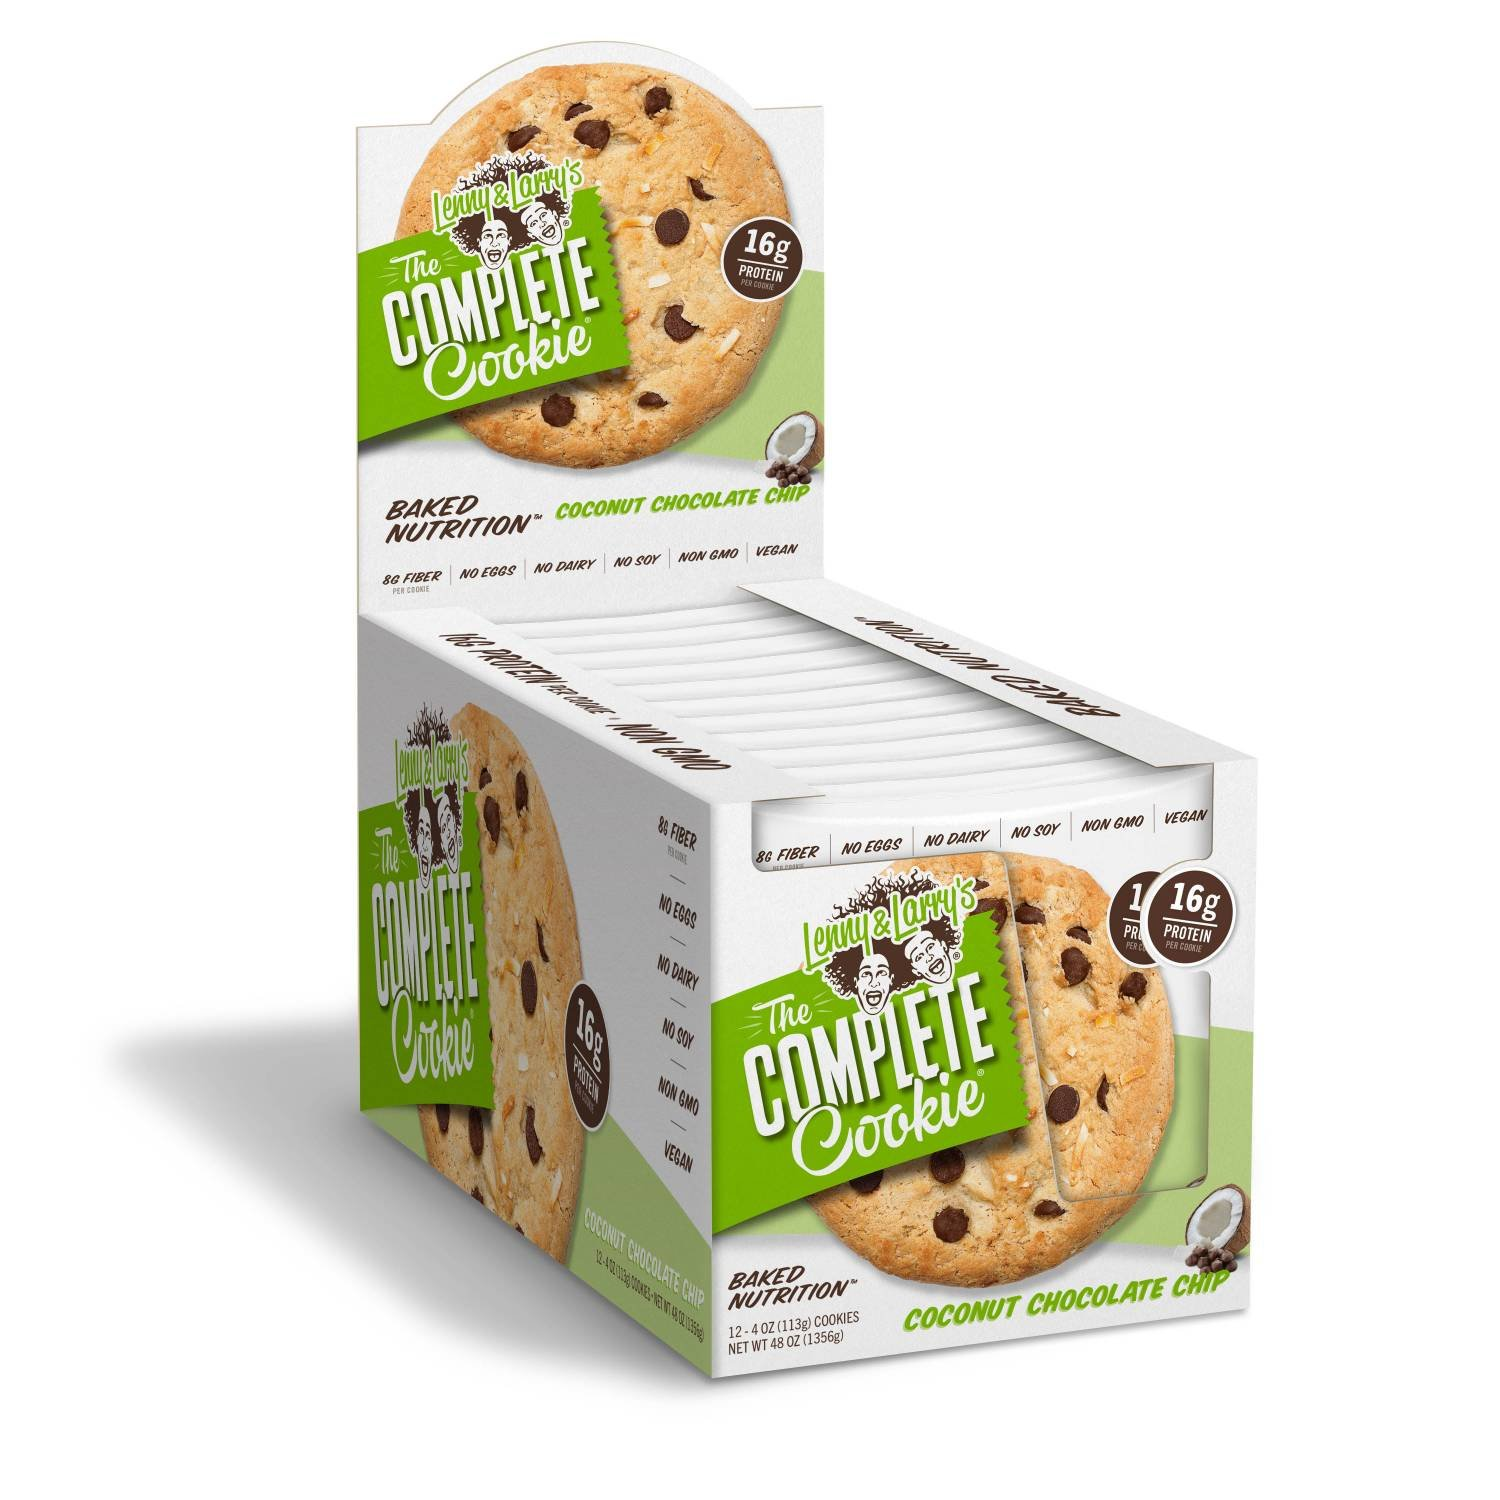 [SALE] Lenny & Larry's The Complete Cookie, Coconut Chocolate Chip, 4-Ounce Cookies (Pack of 12) by Lenny & Larry's (Image #3)